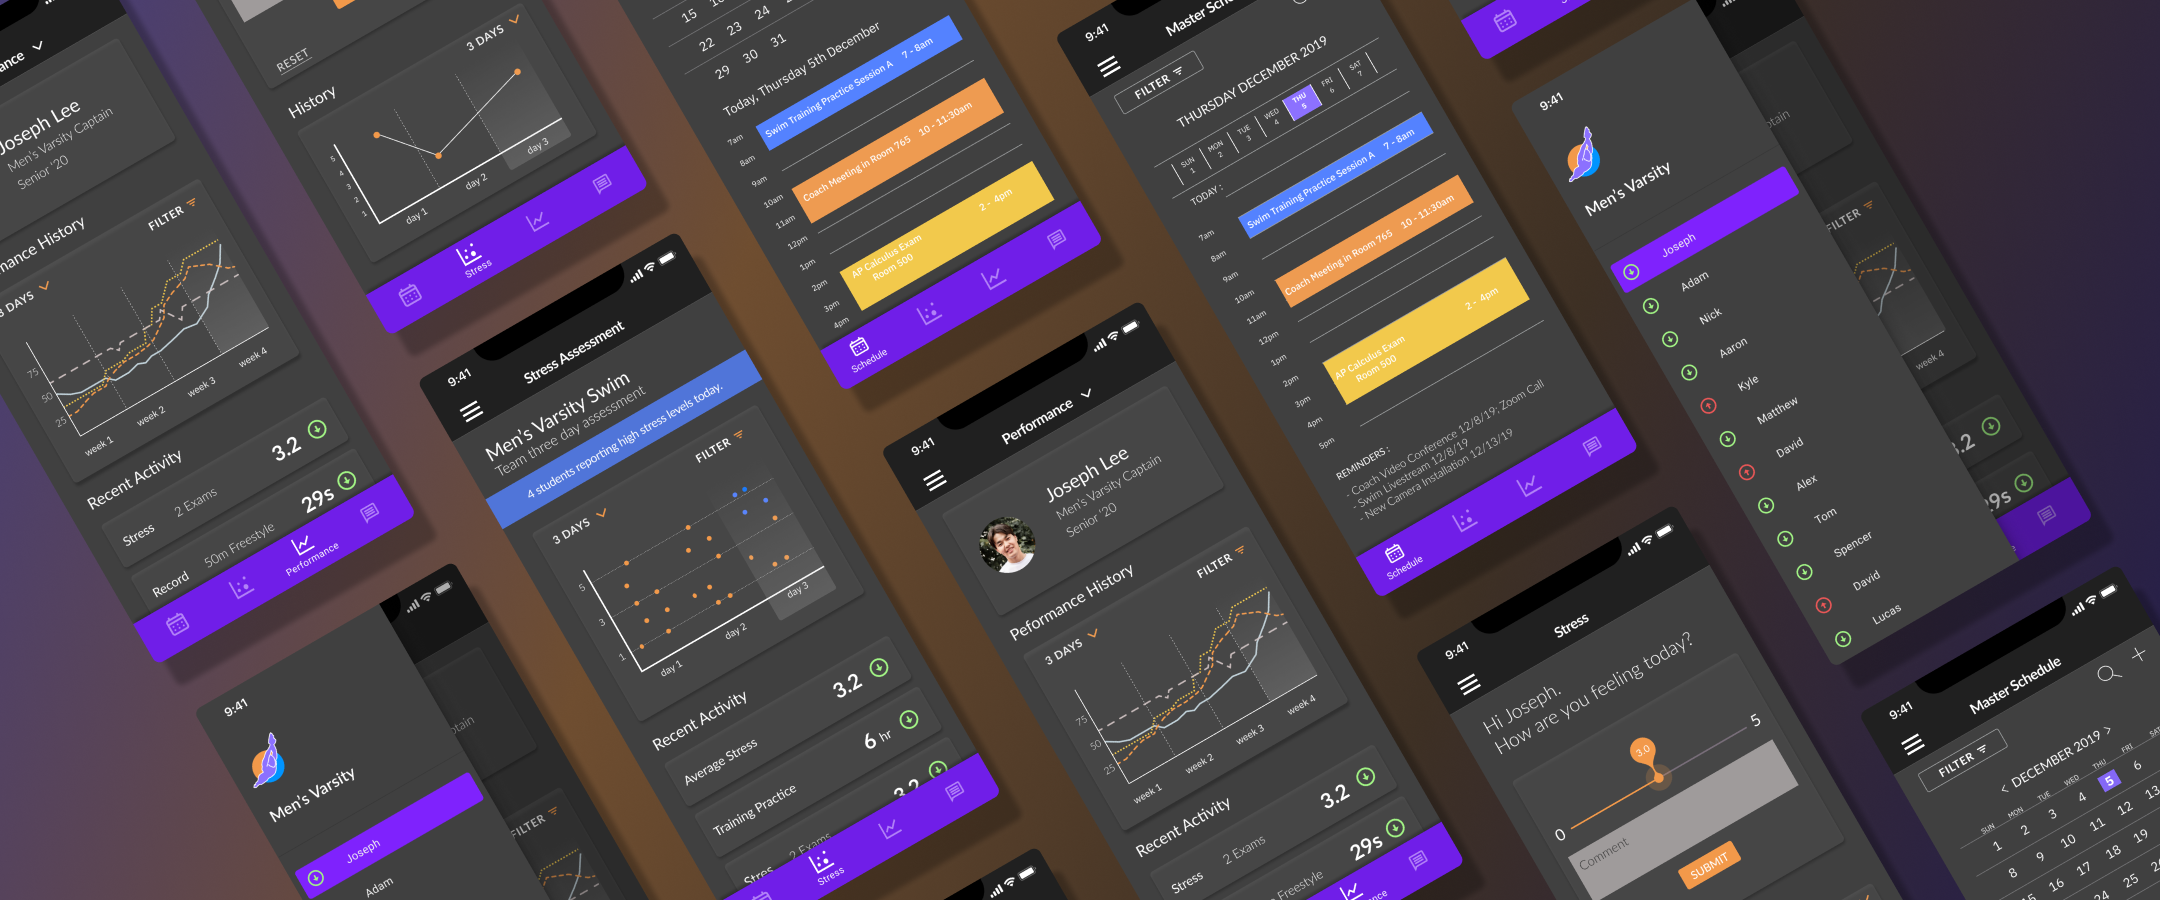 Statera_Overview_App1